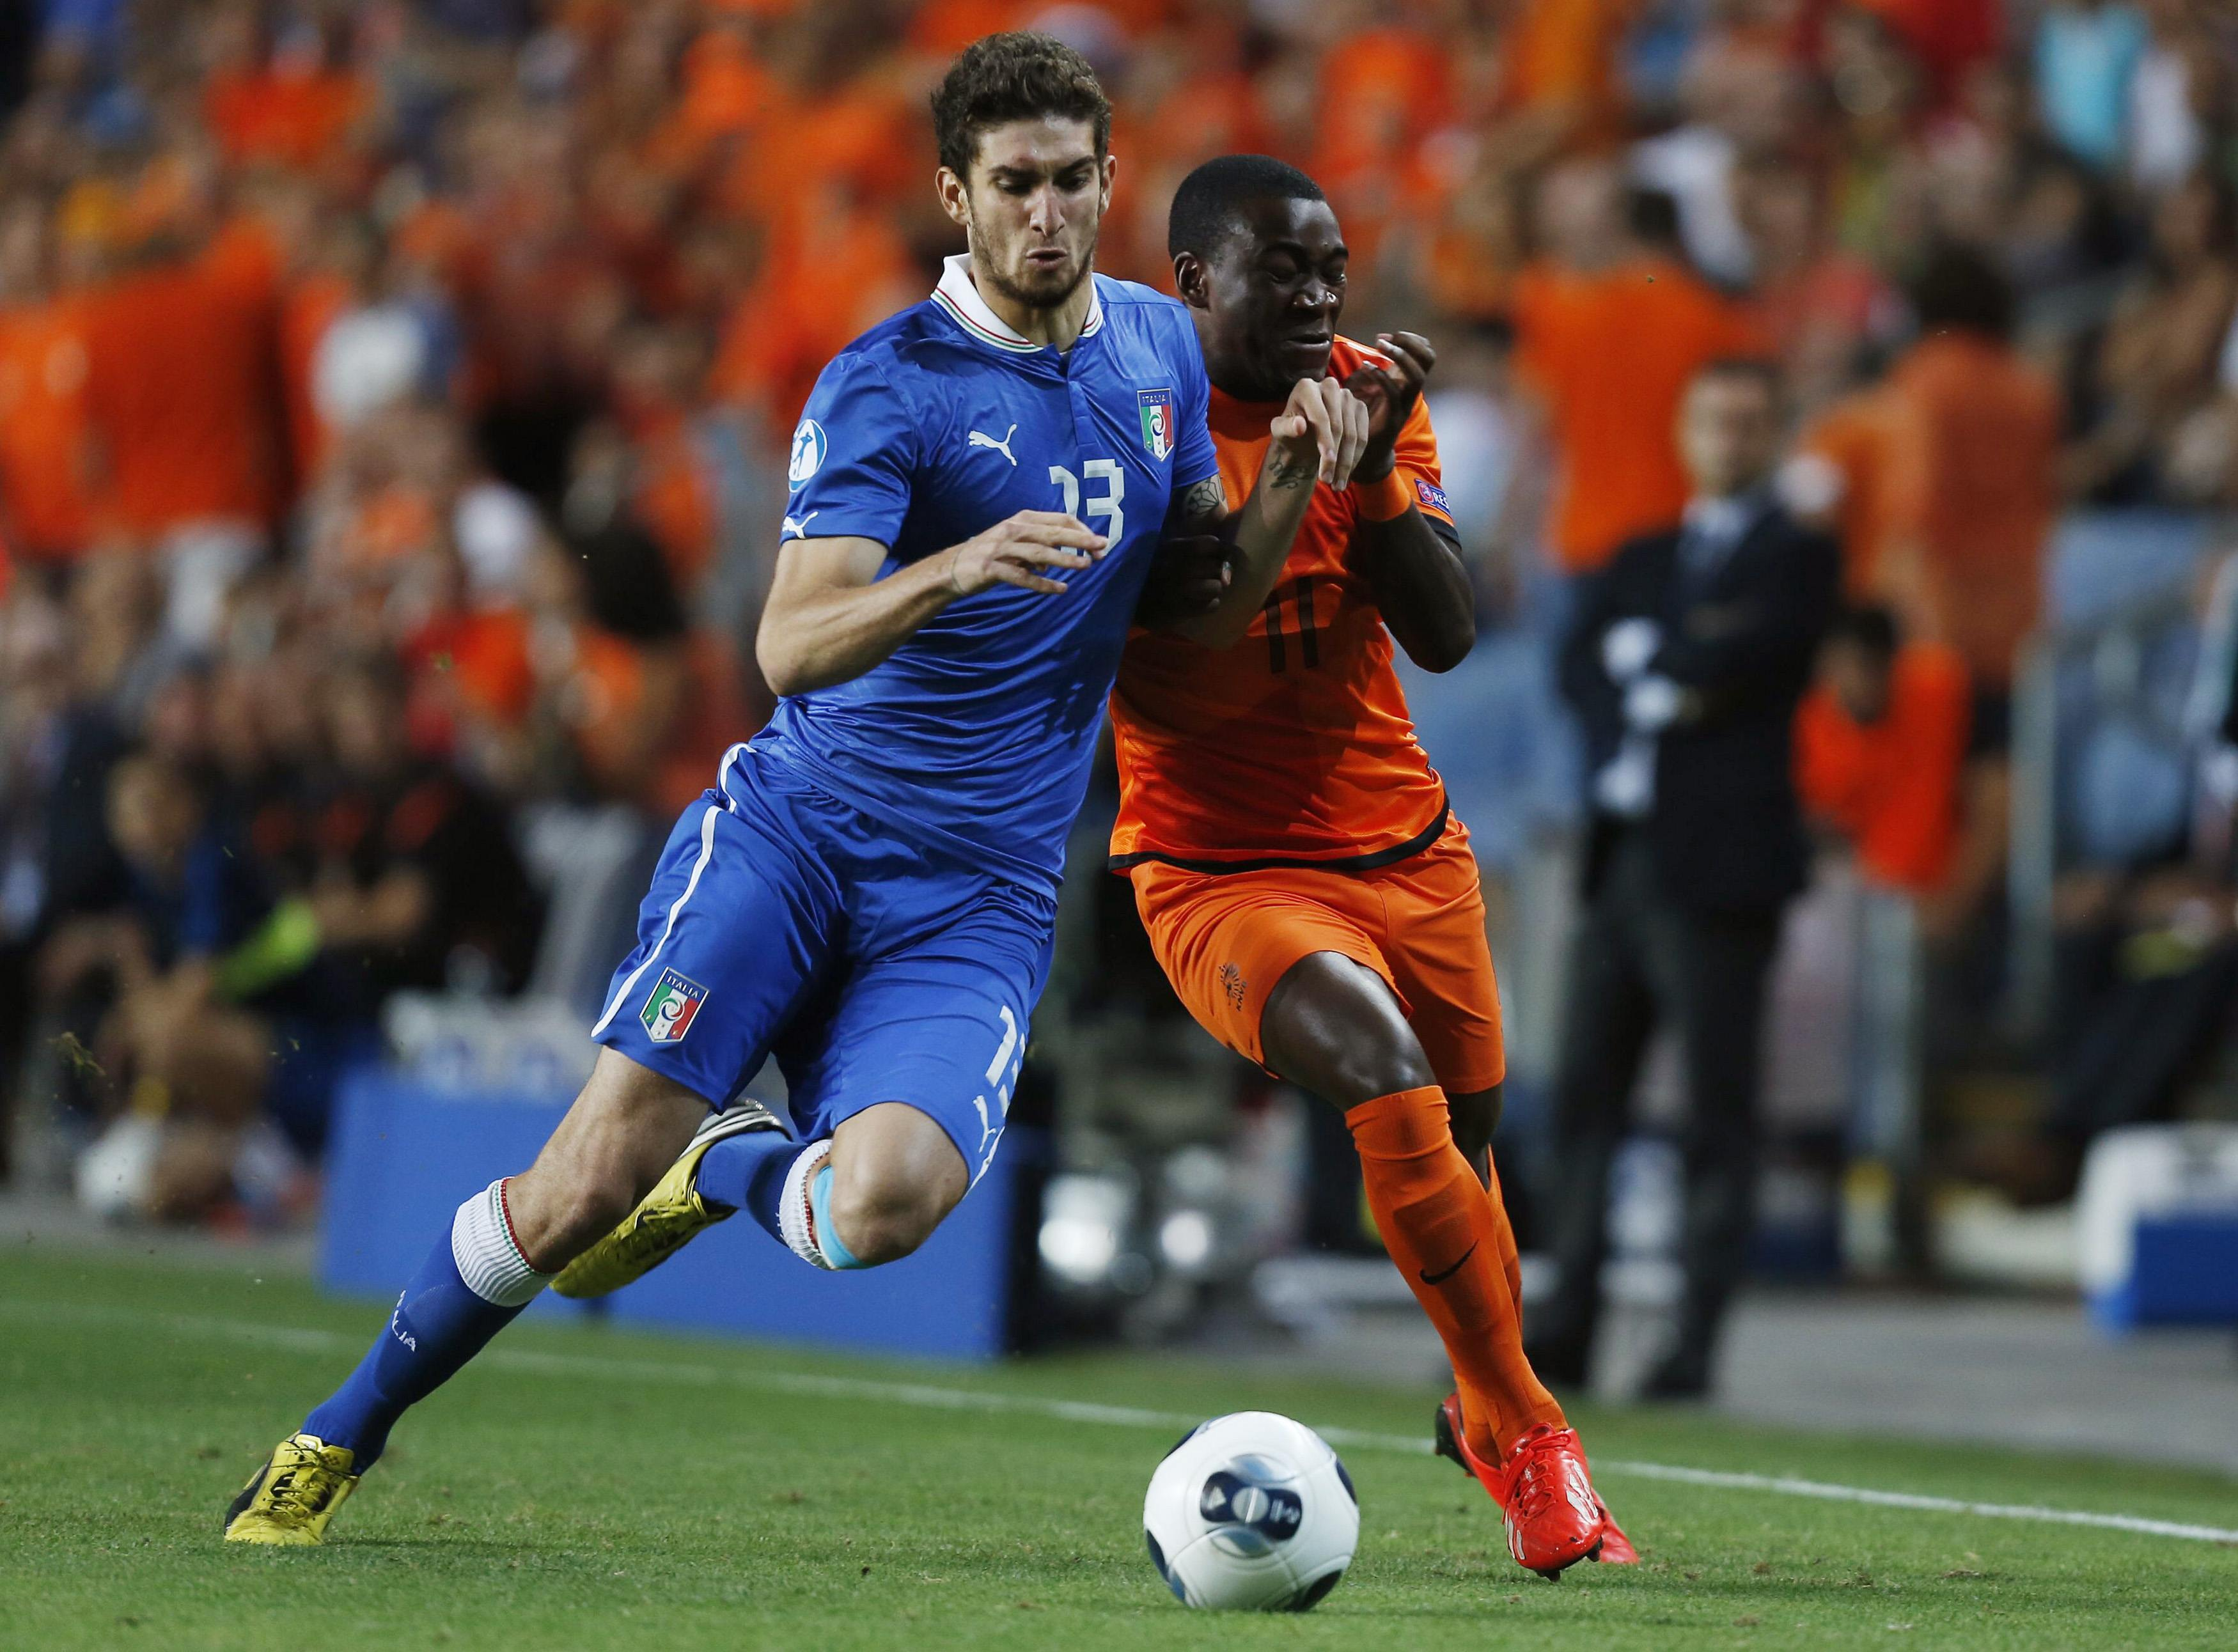 Matteo Bianchetti of Italy fights for the ball with Ola John of the Netherlands during their semi-final European Under-21 Championship soccer match in Petah Tikva